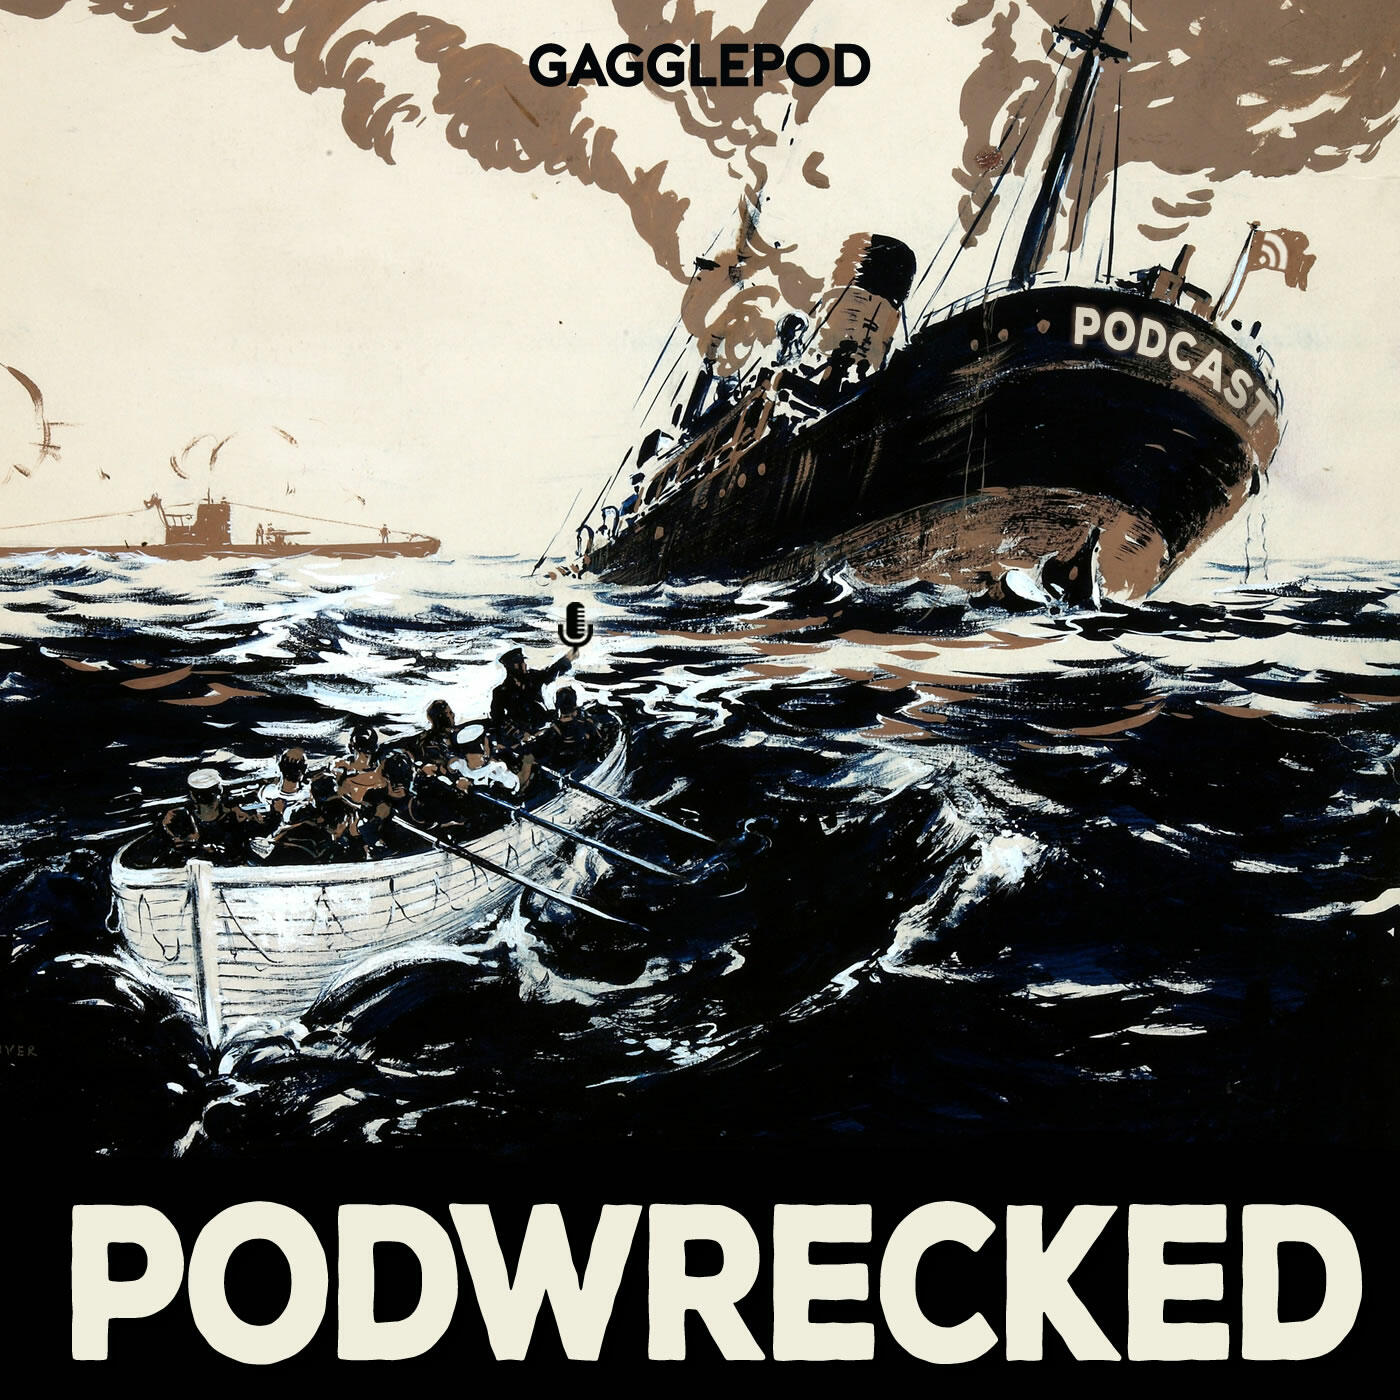 Podwrecked